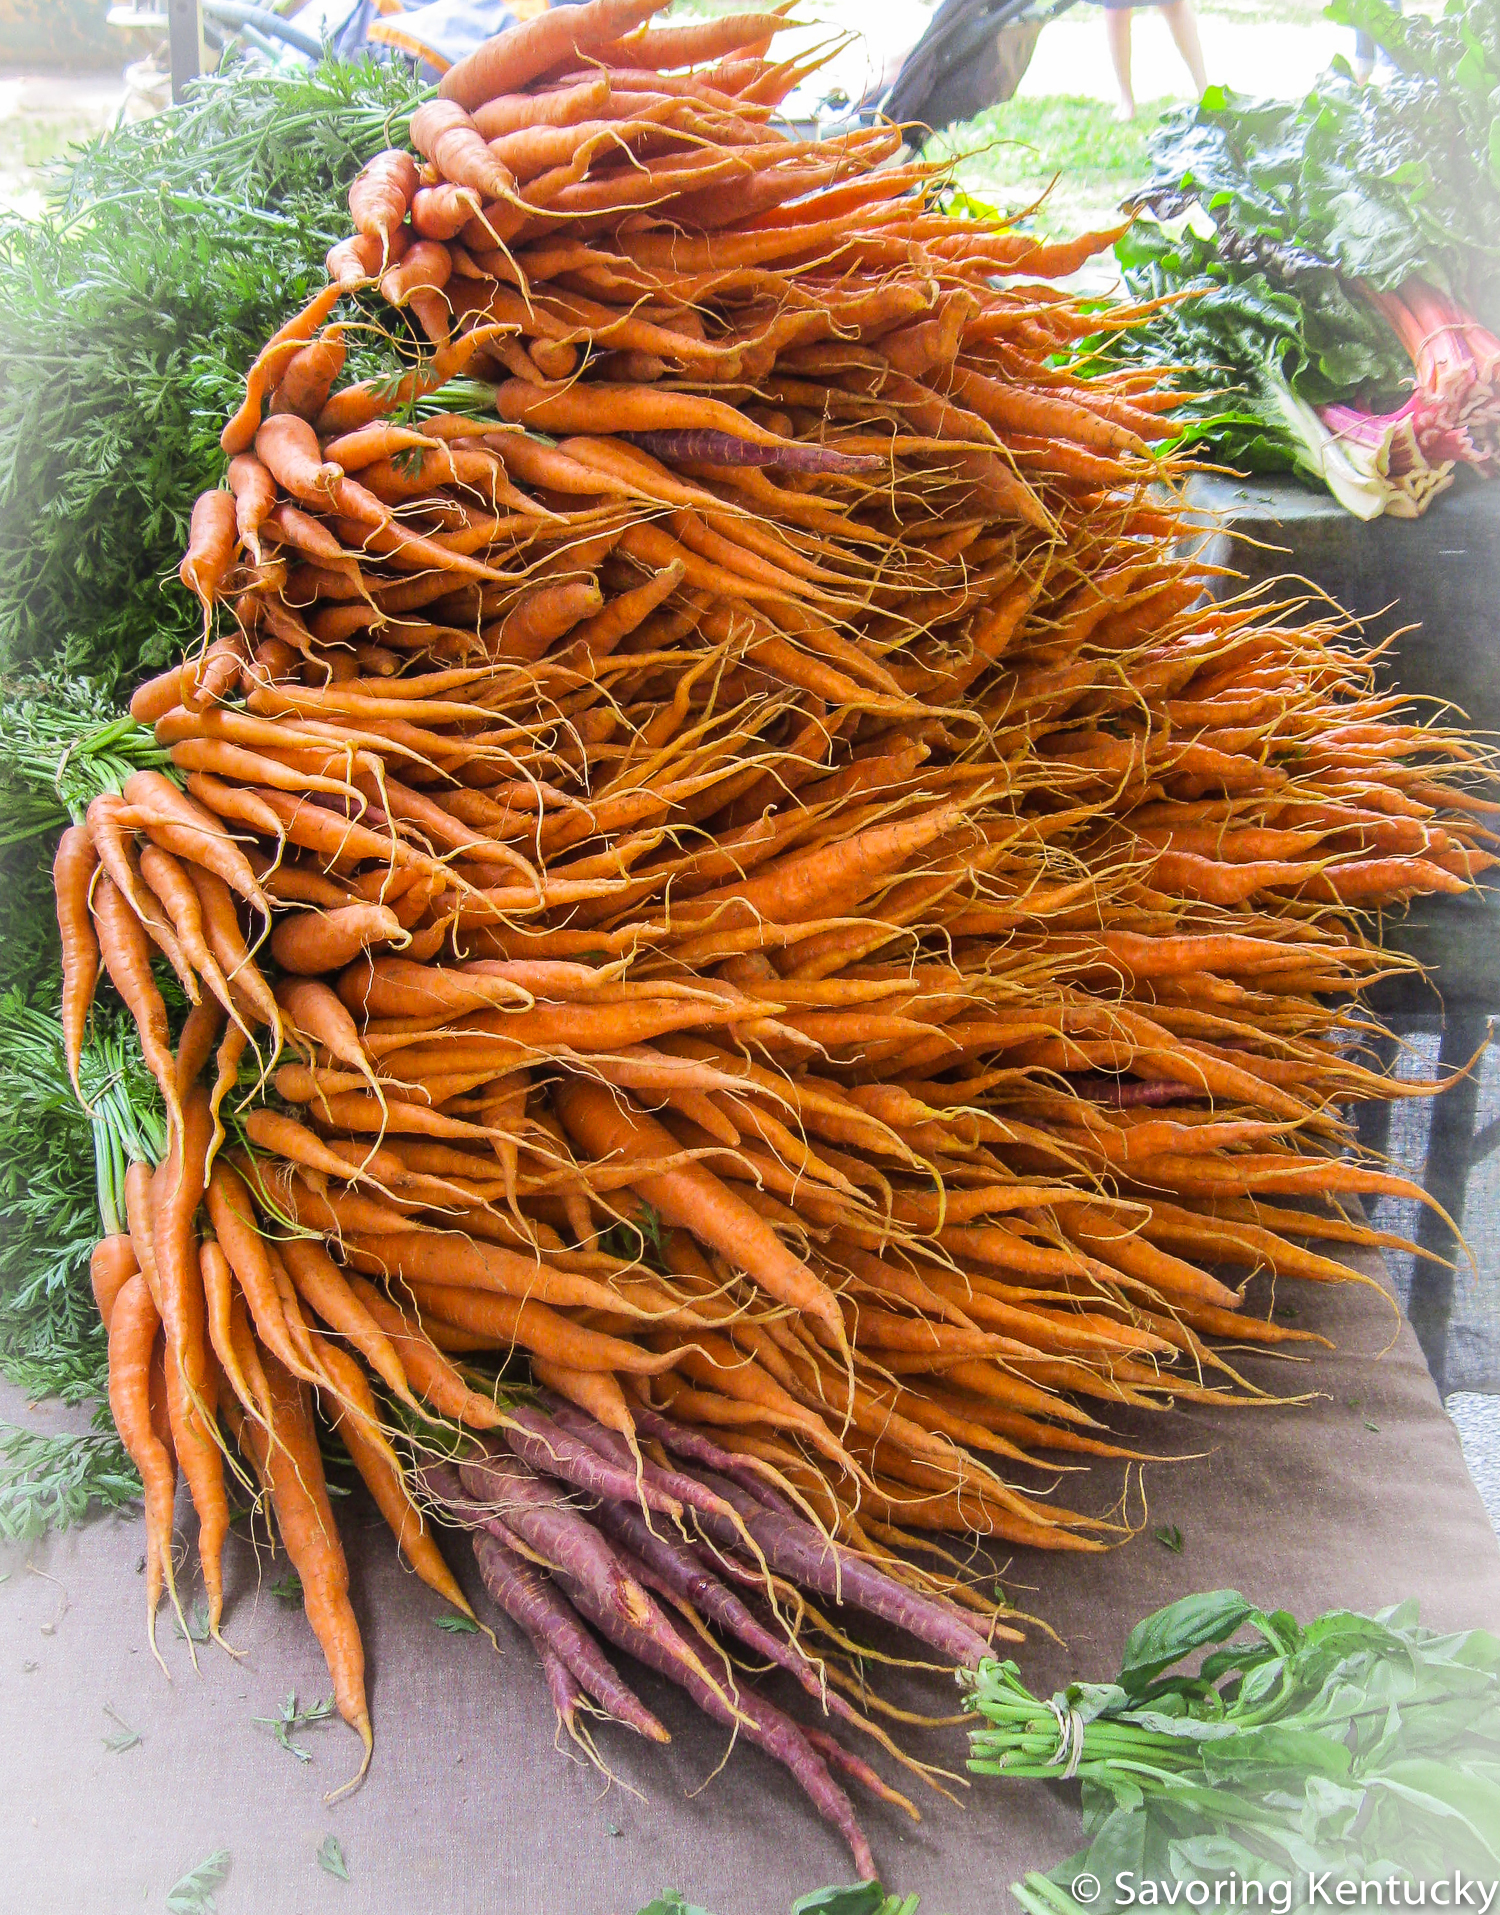 Carrot burst, from Pavel's Farm, with one red bunch